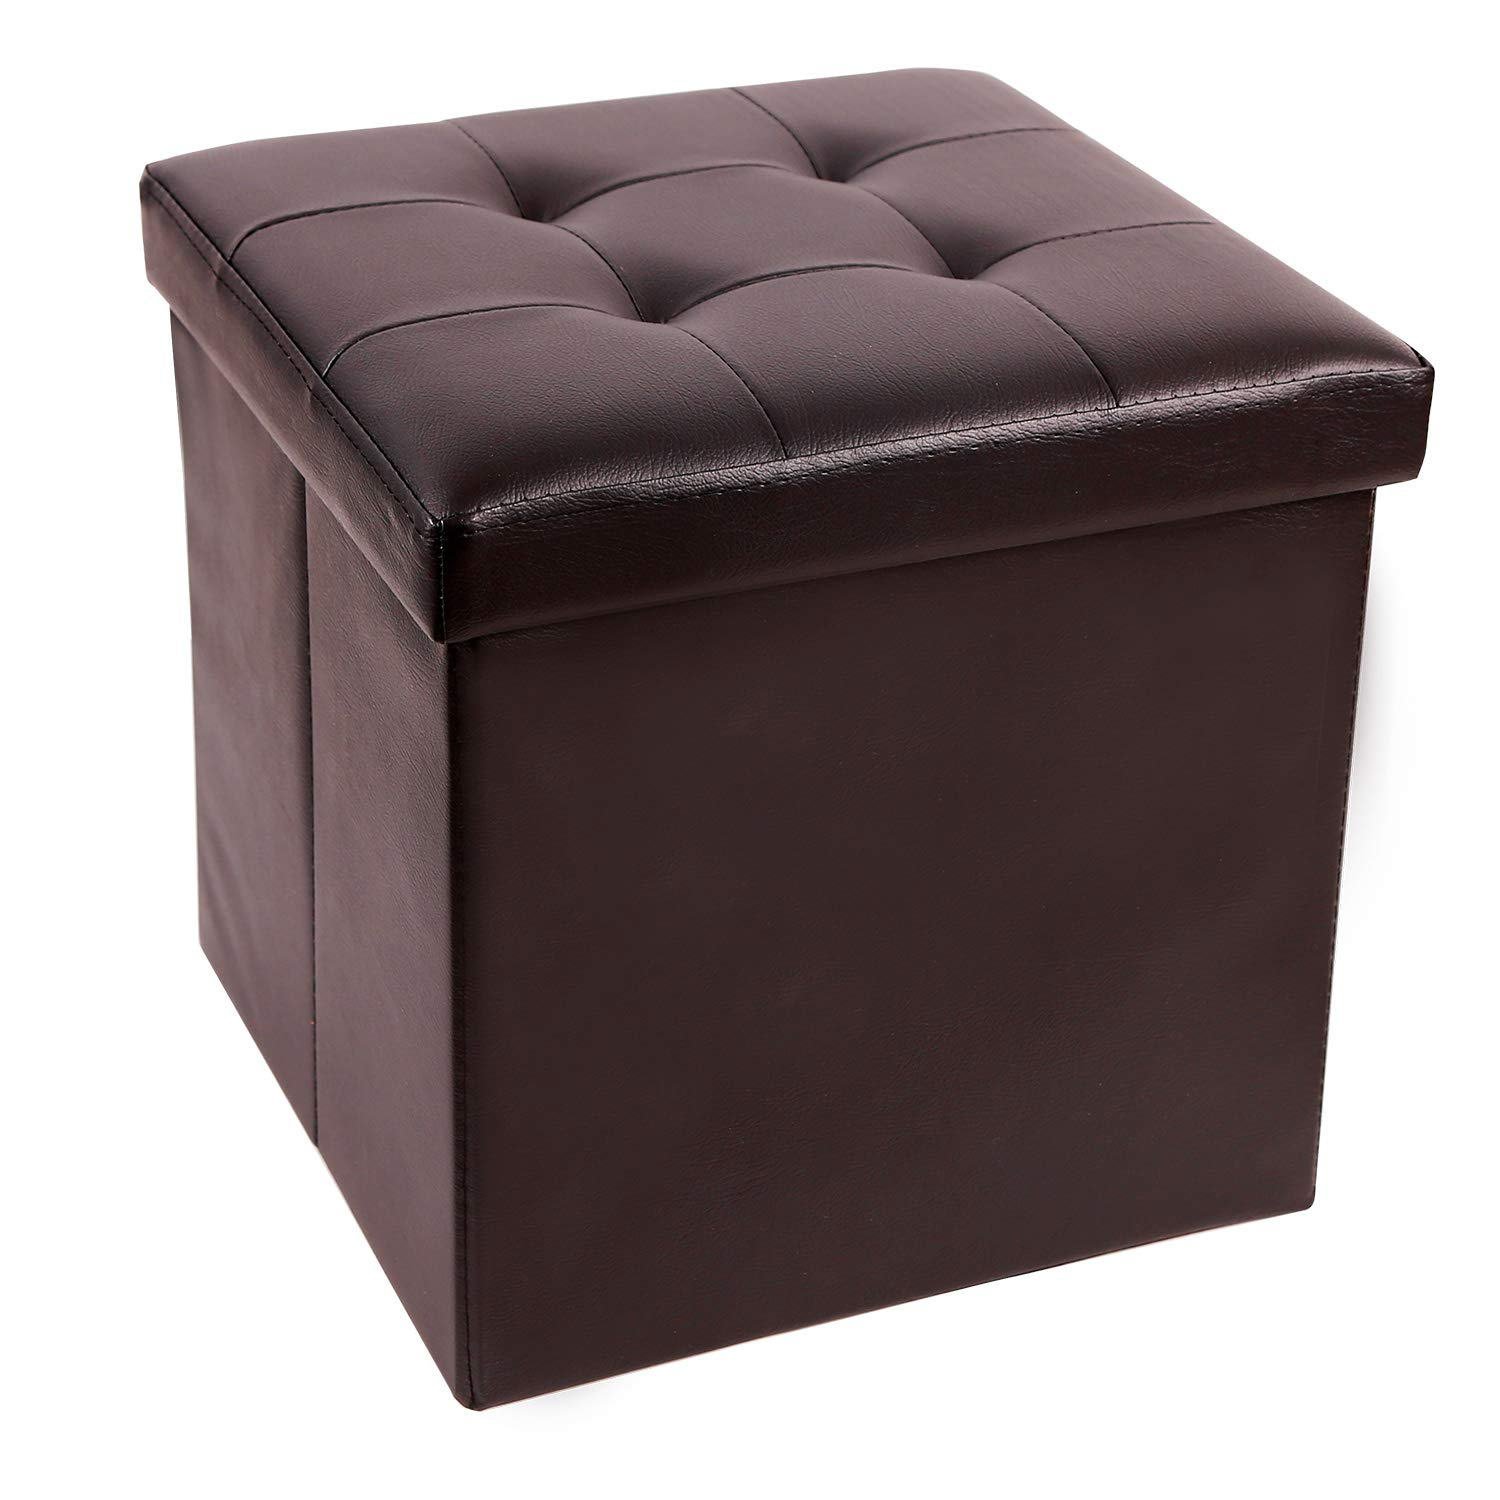 """REDCAMP 15""""(55L) Faux Leather Storage Ottoman Cube, Folding Small Ottoman Foot Rest for Bedroom Dorm Sofa, Brown"""